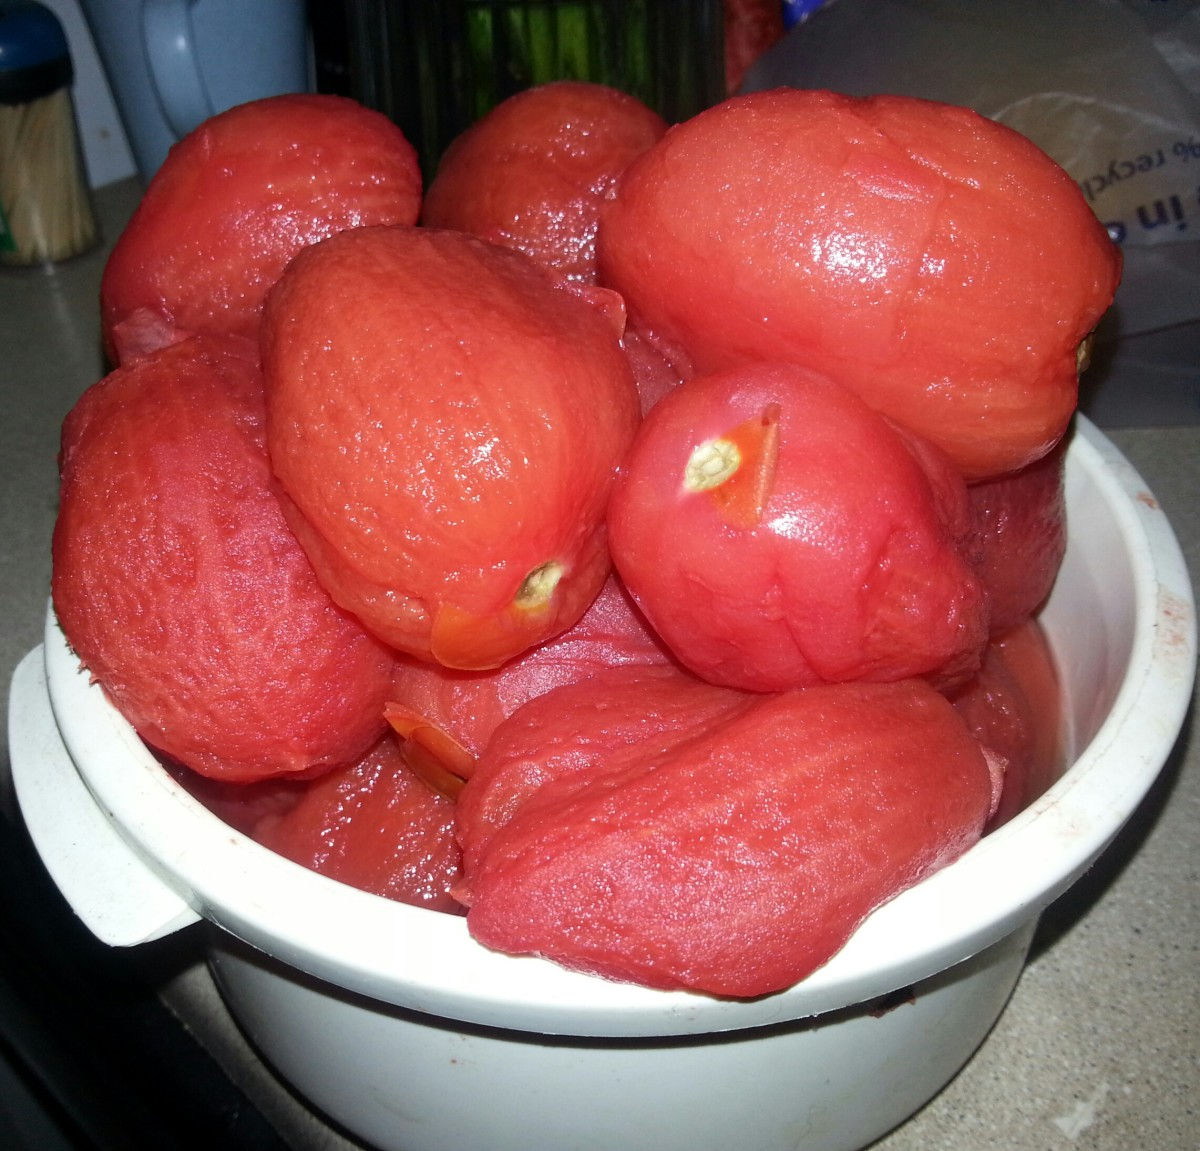 Blanched and peeled tomatoes.